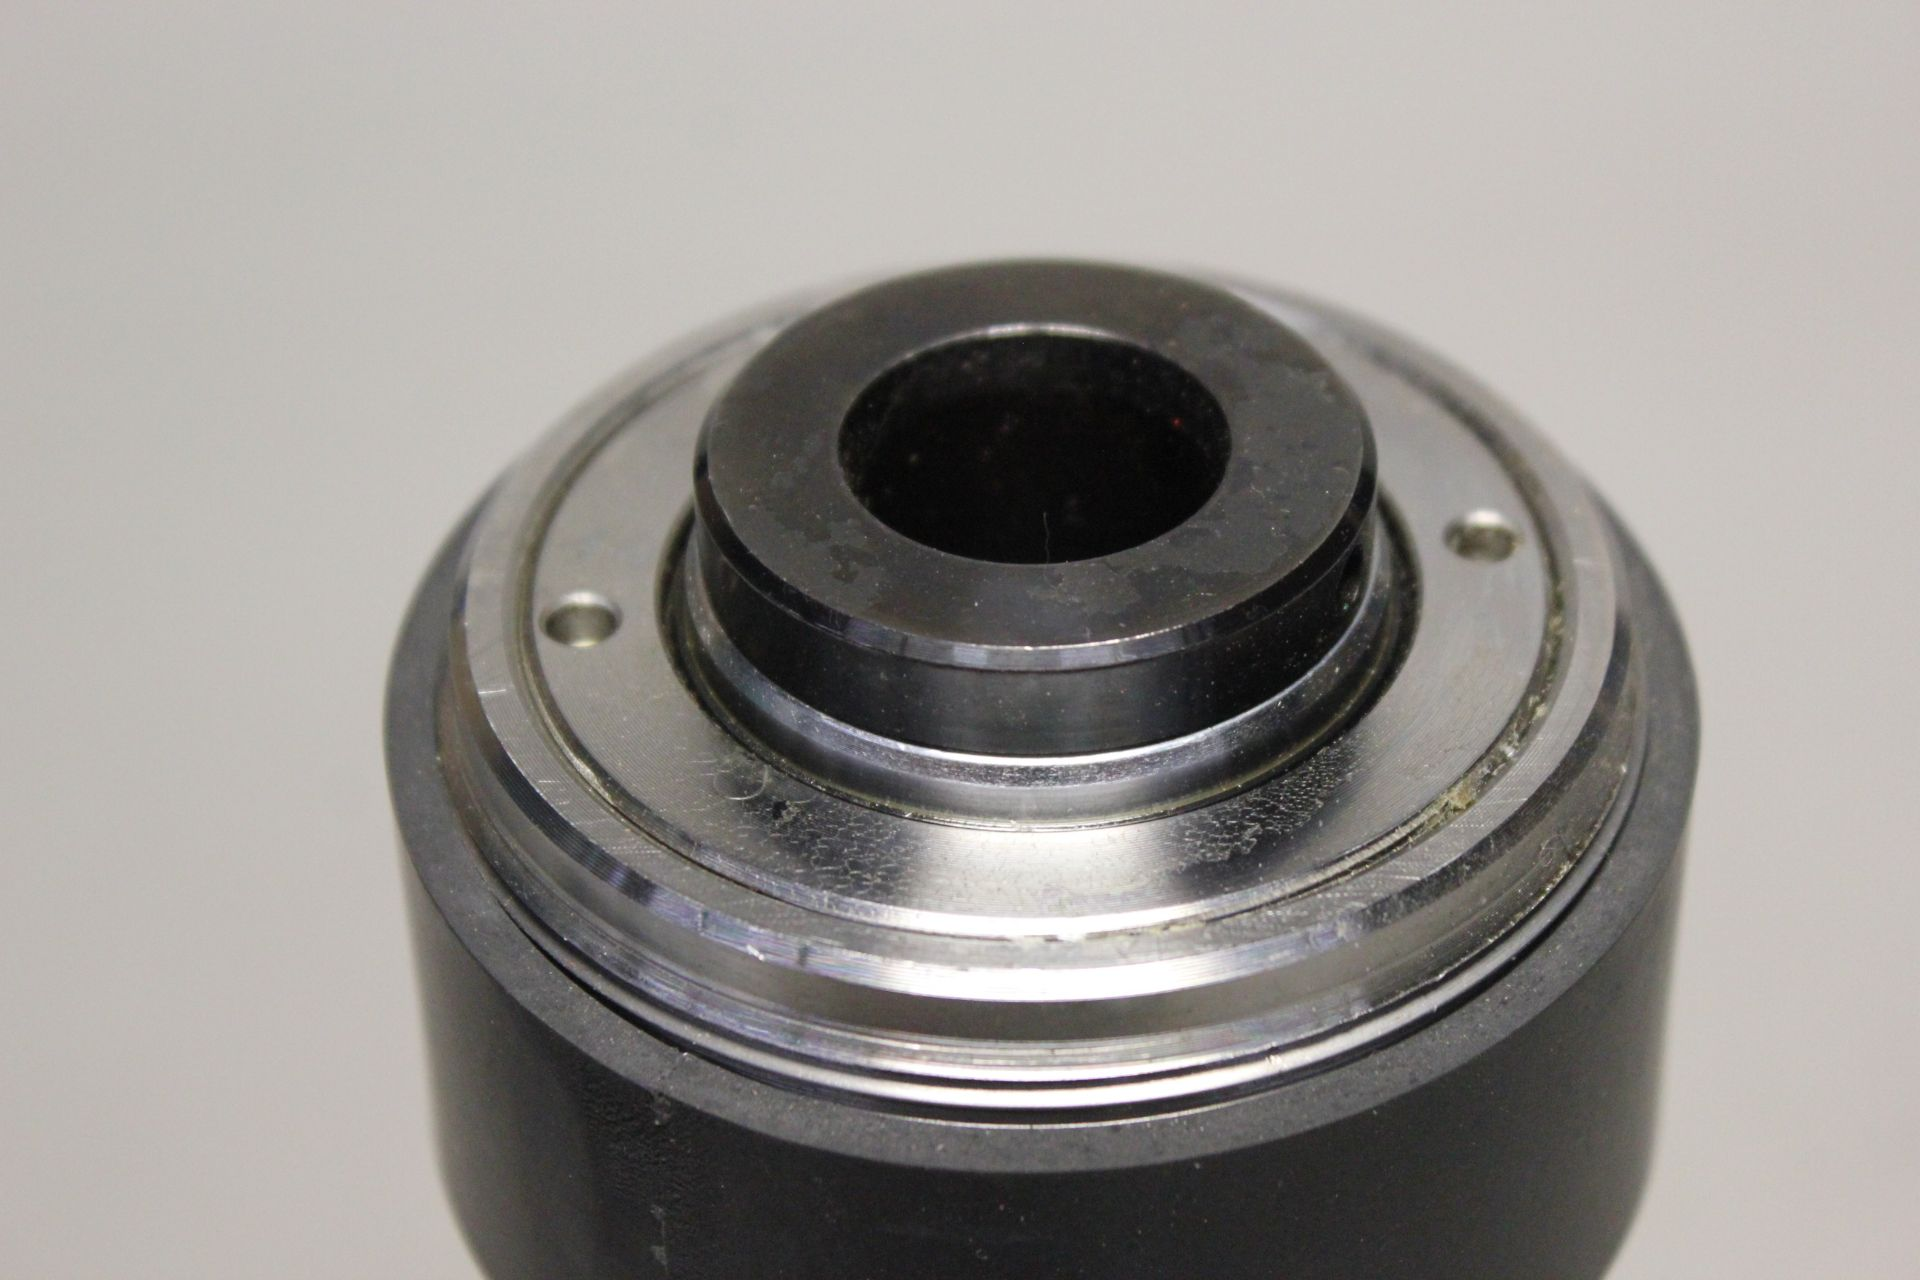 NEW YALE HOLLOW HYDRAULIC CYLINDER - Image 4 of 4